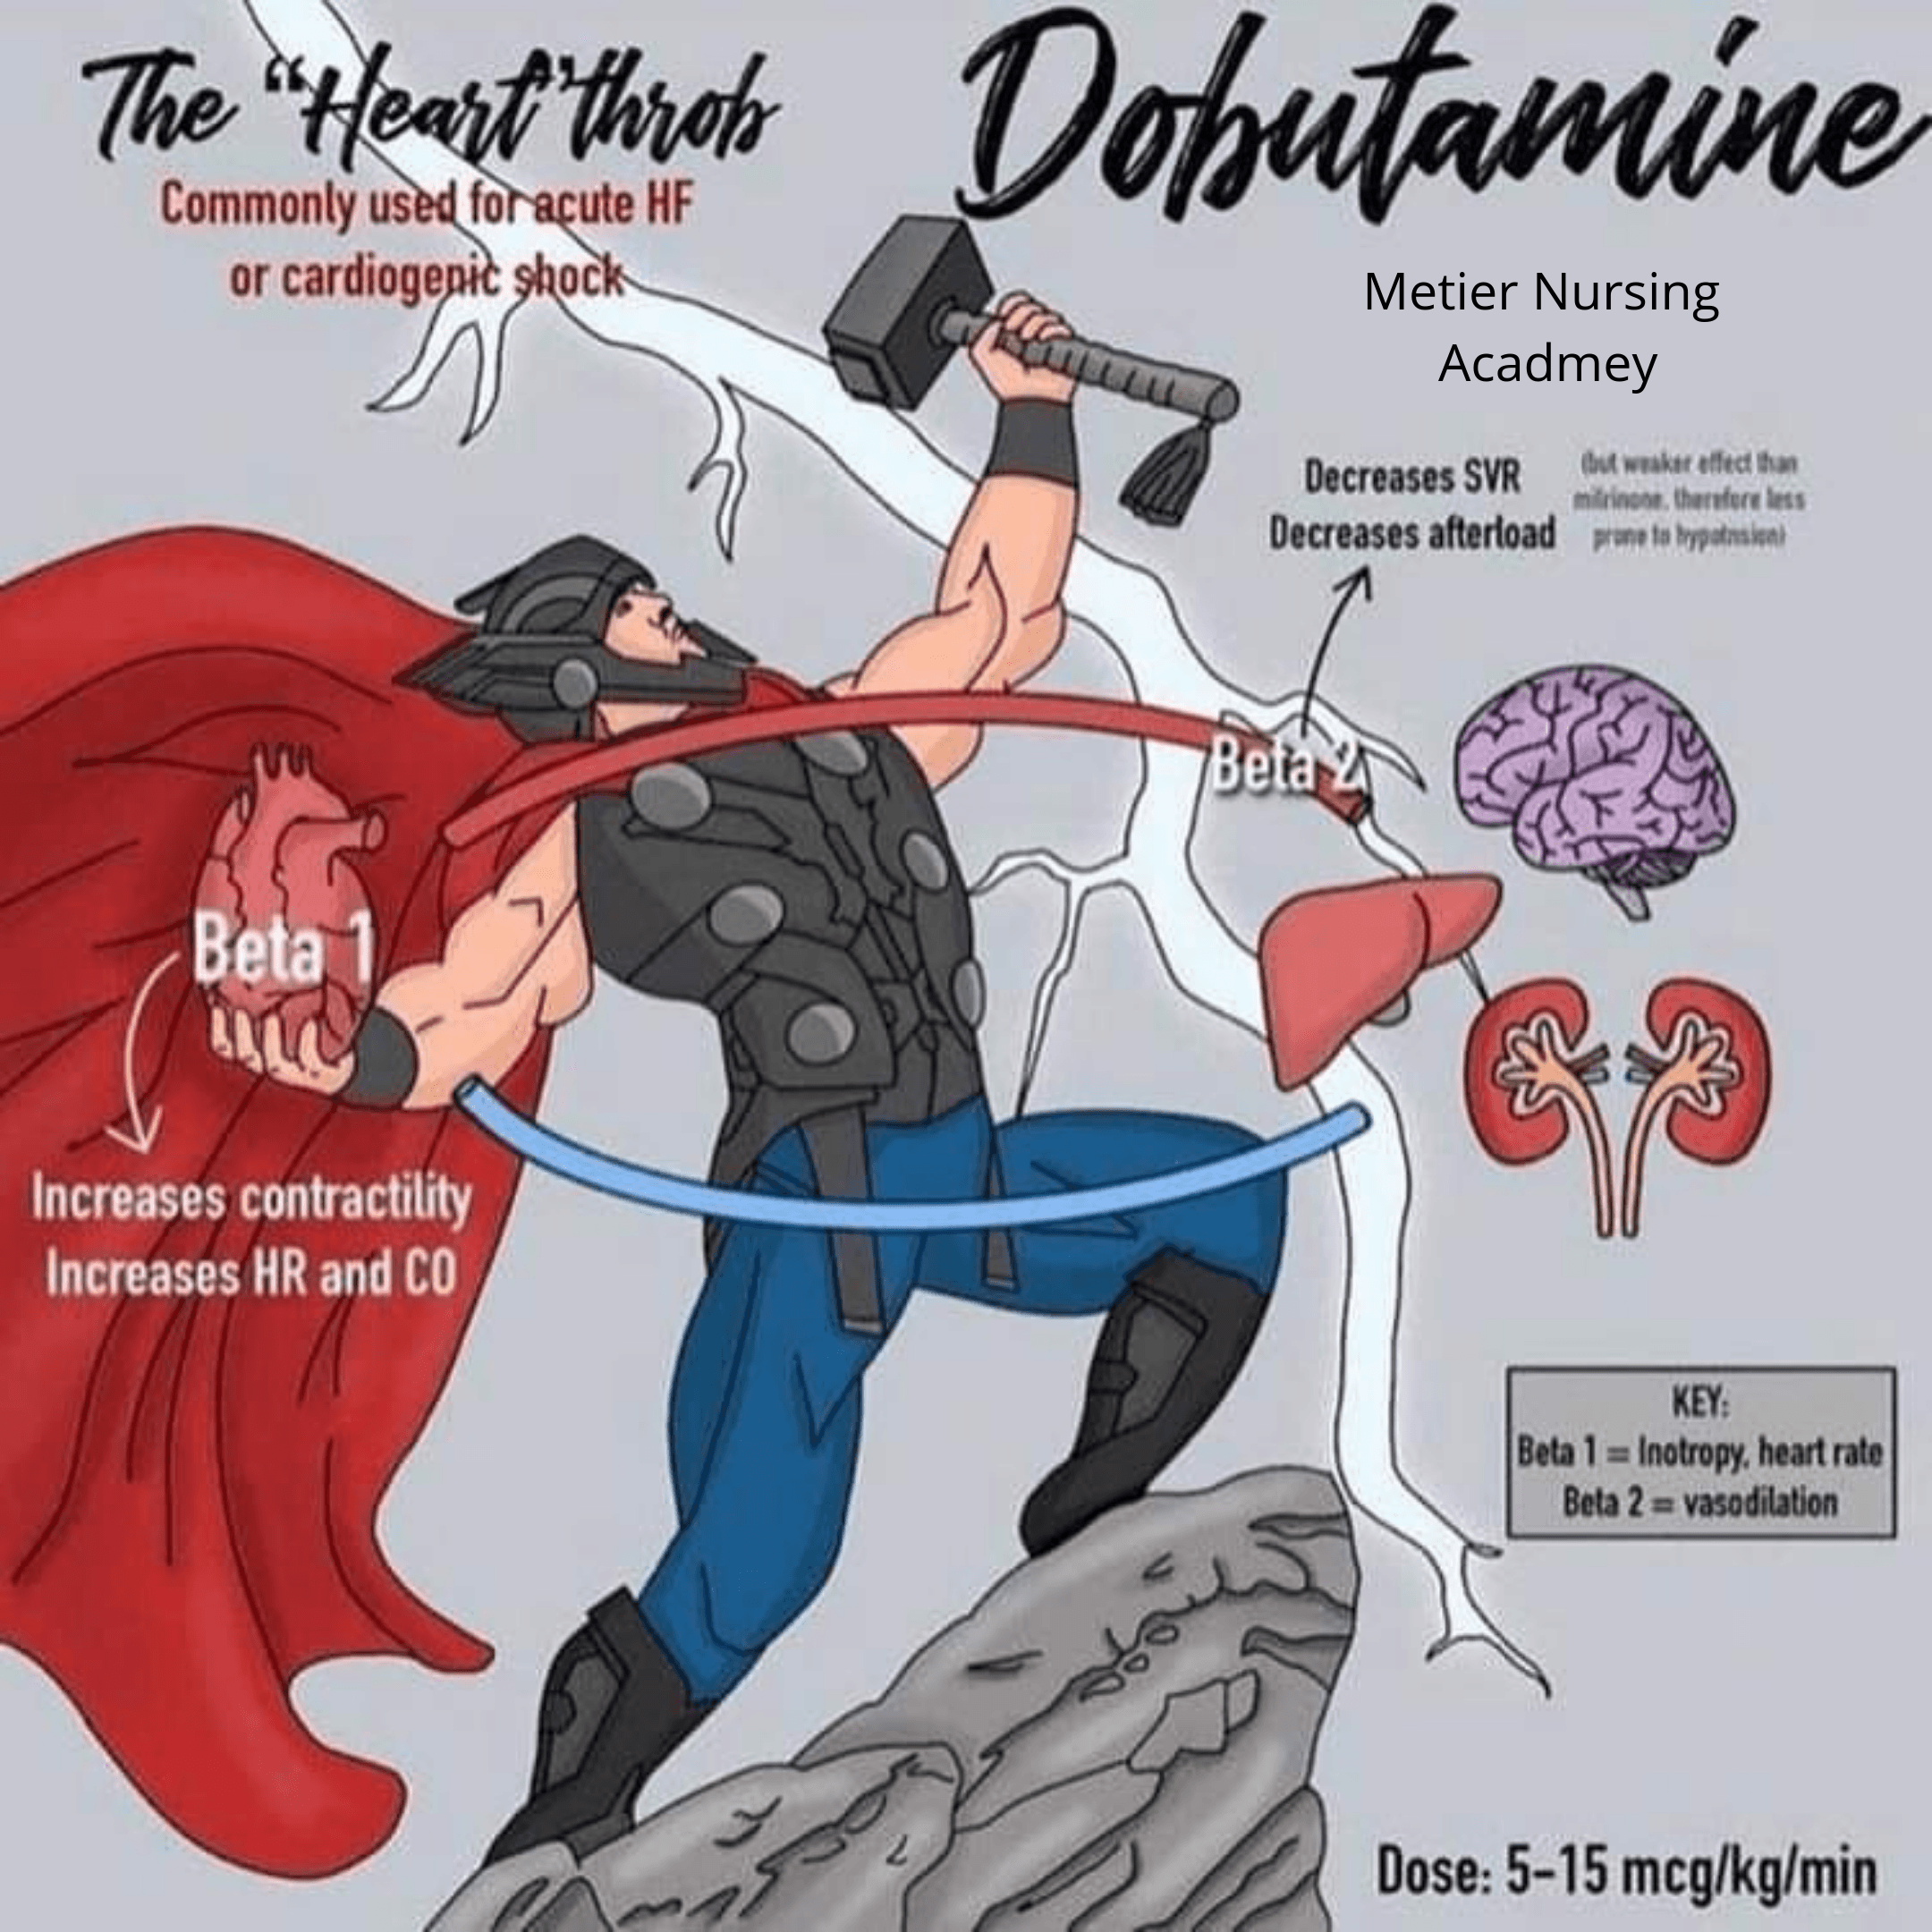 Dobutaminic super hero